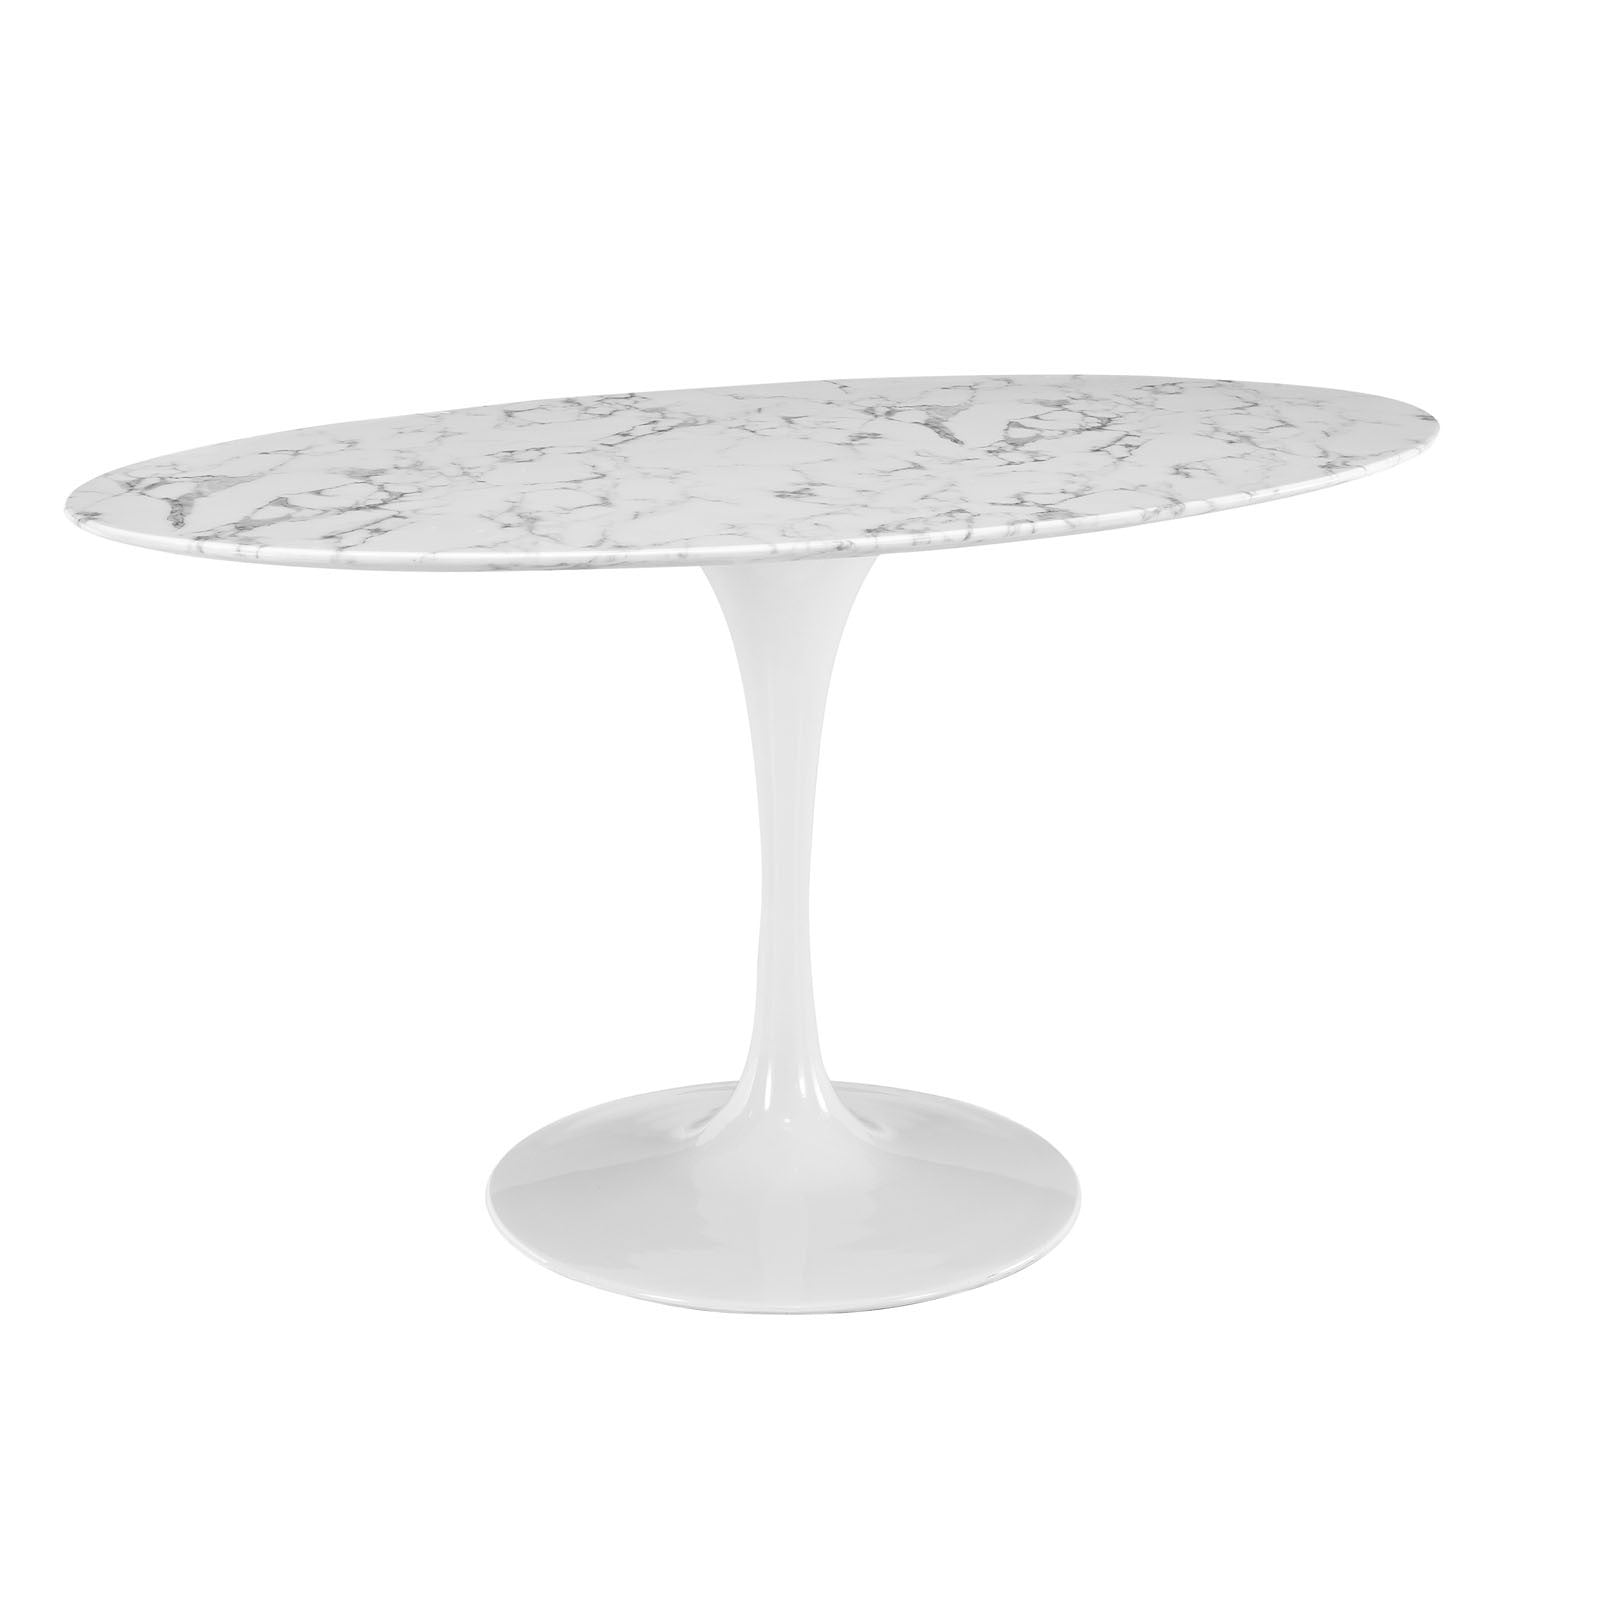 Oval marble dining table -  Tulip Style 60 Oval Marble Dining Table Emfurn 3